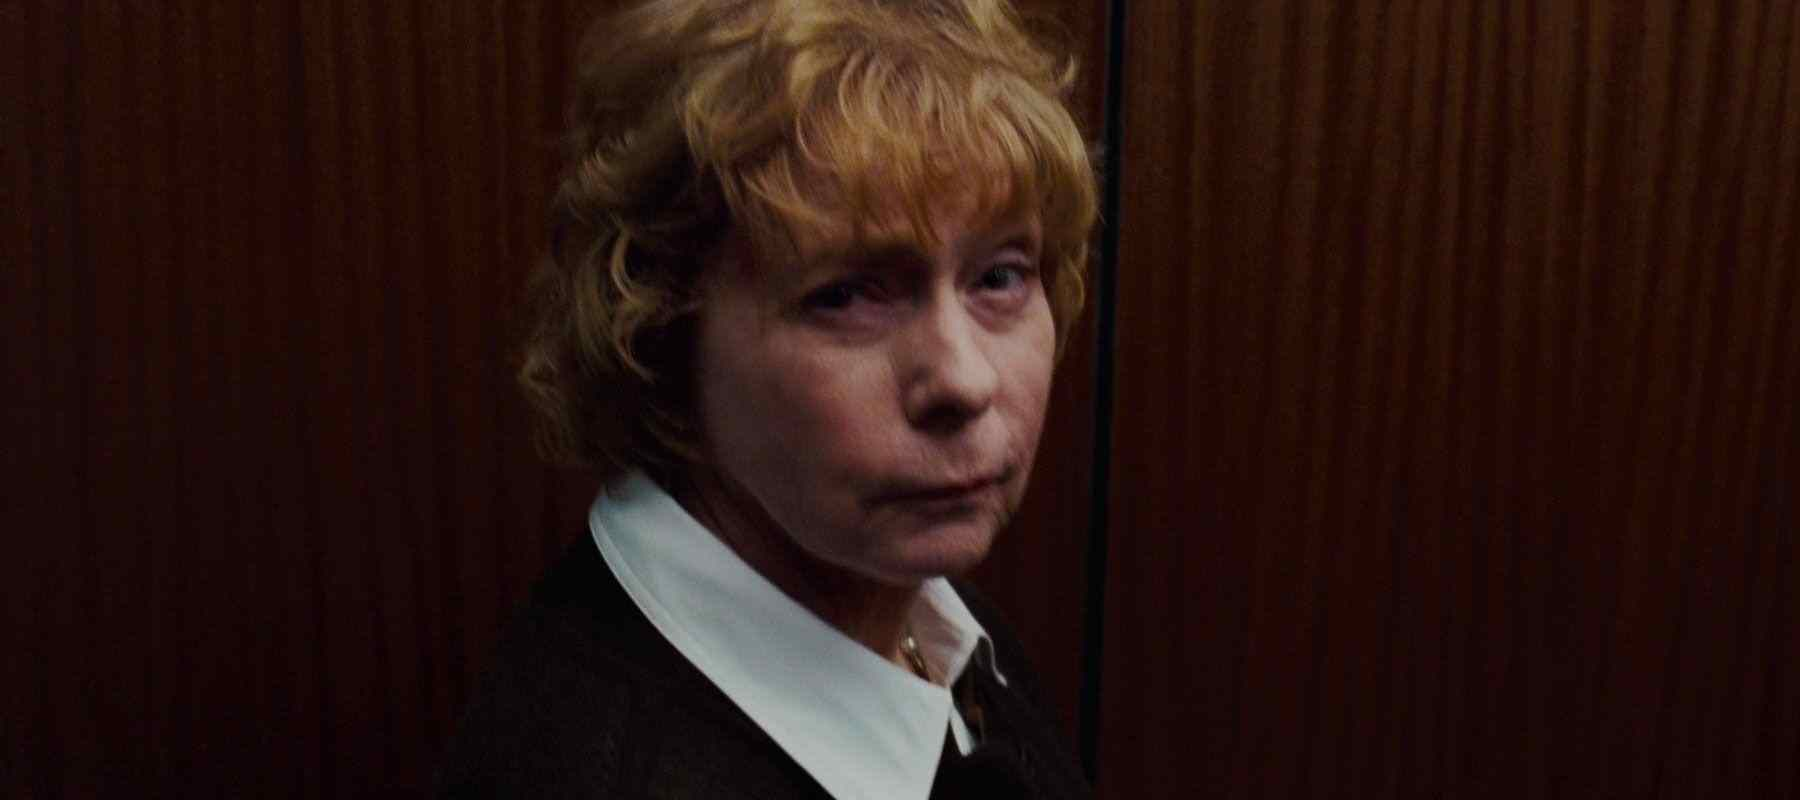 The cute old lady in the devil movie.